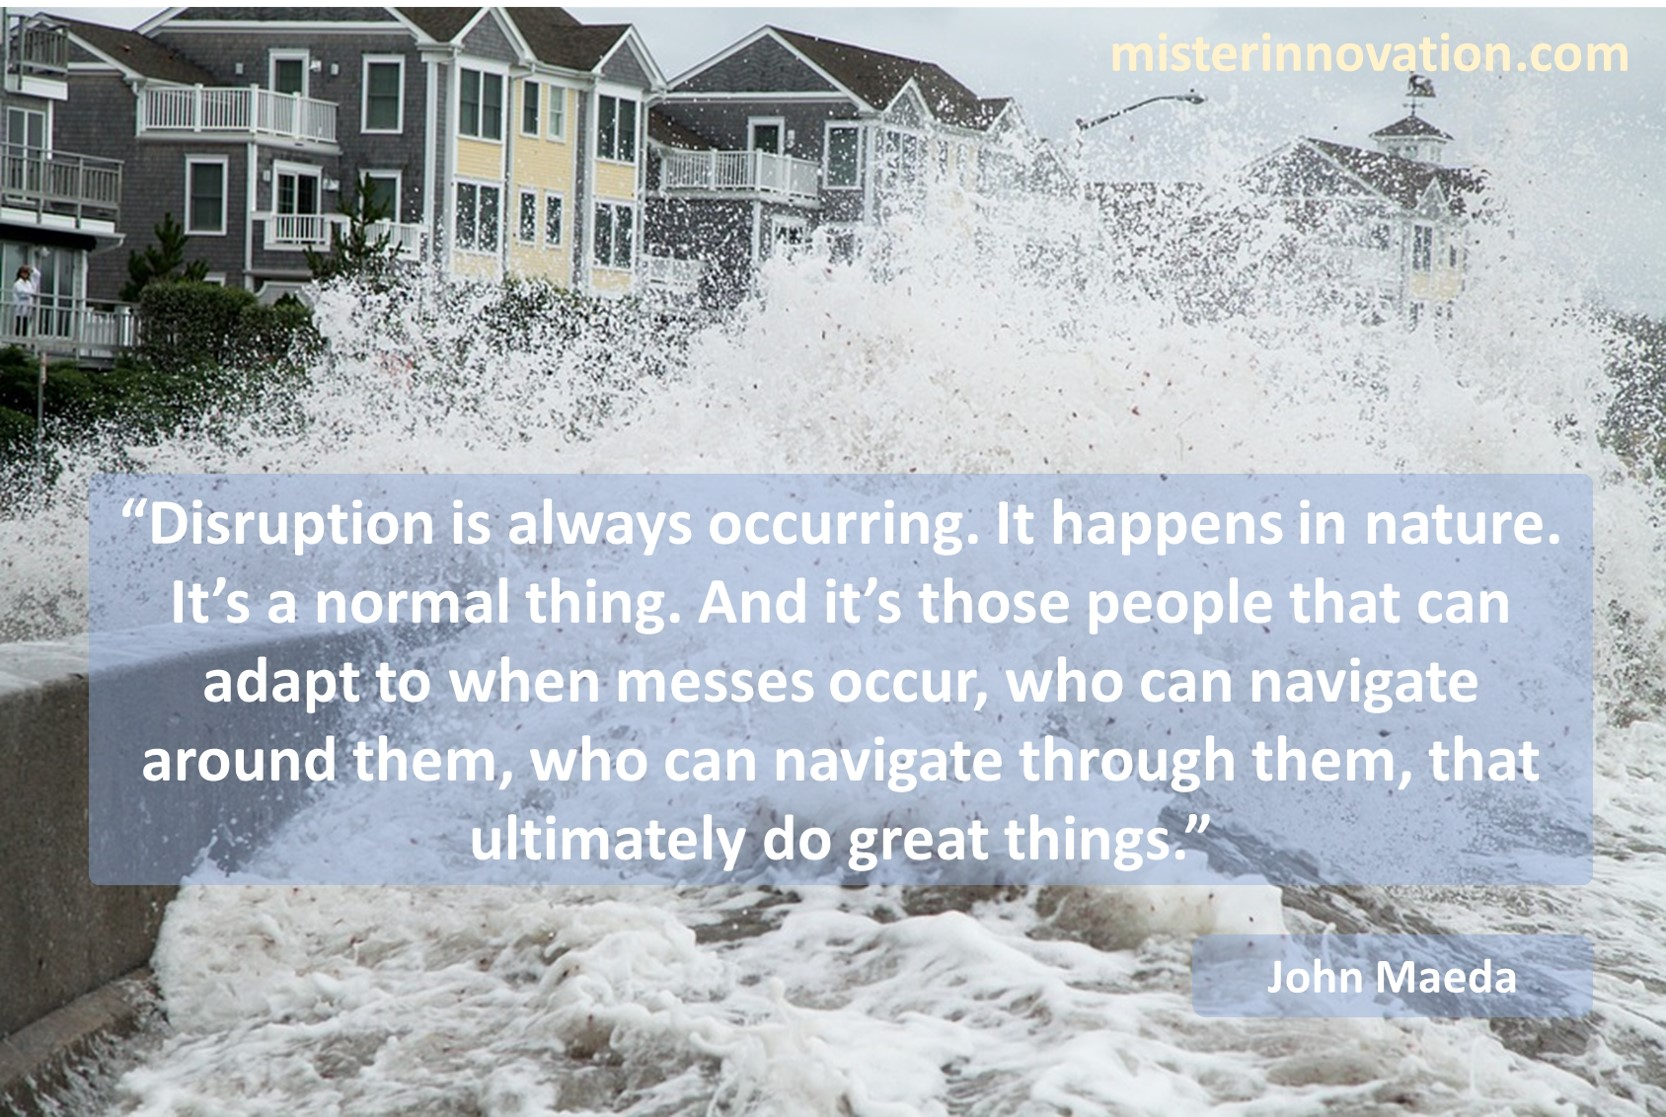 John Maeda Quote on Disruption and Adaptibility